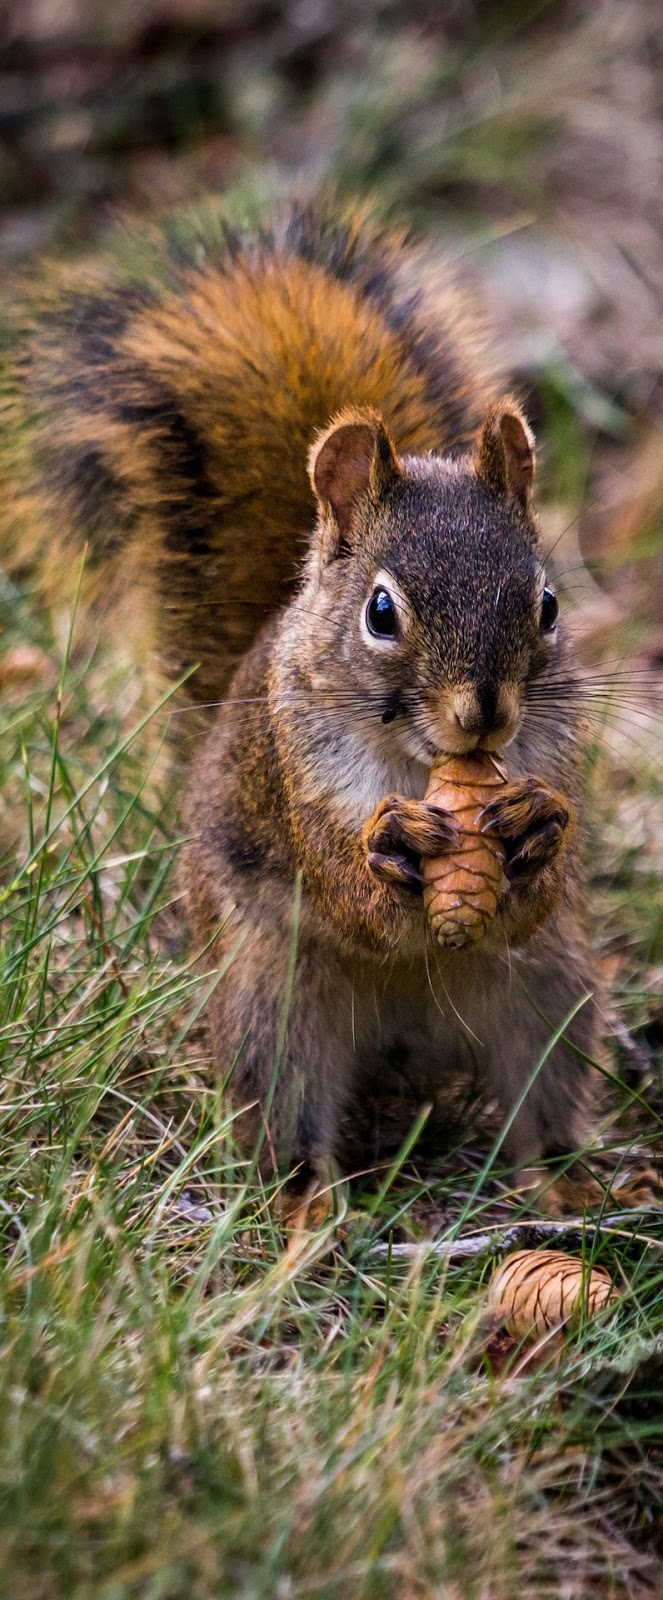 Picture of a squirrel eating.